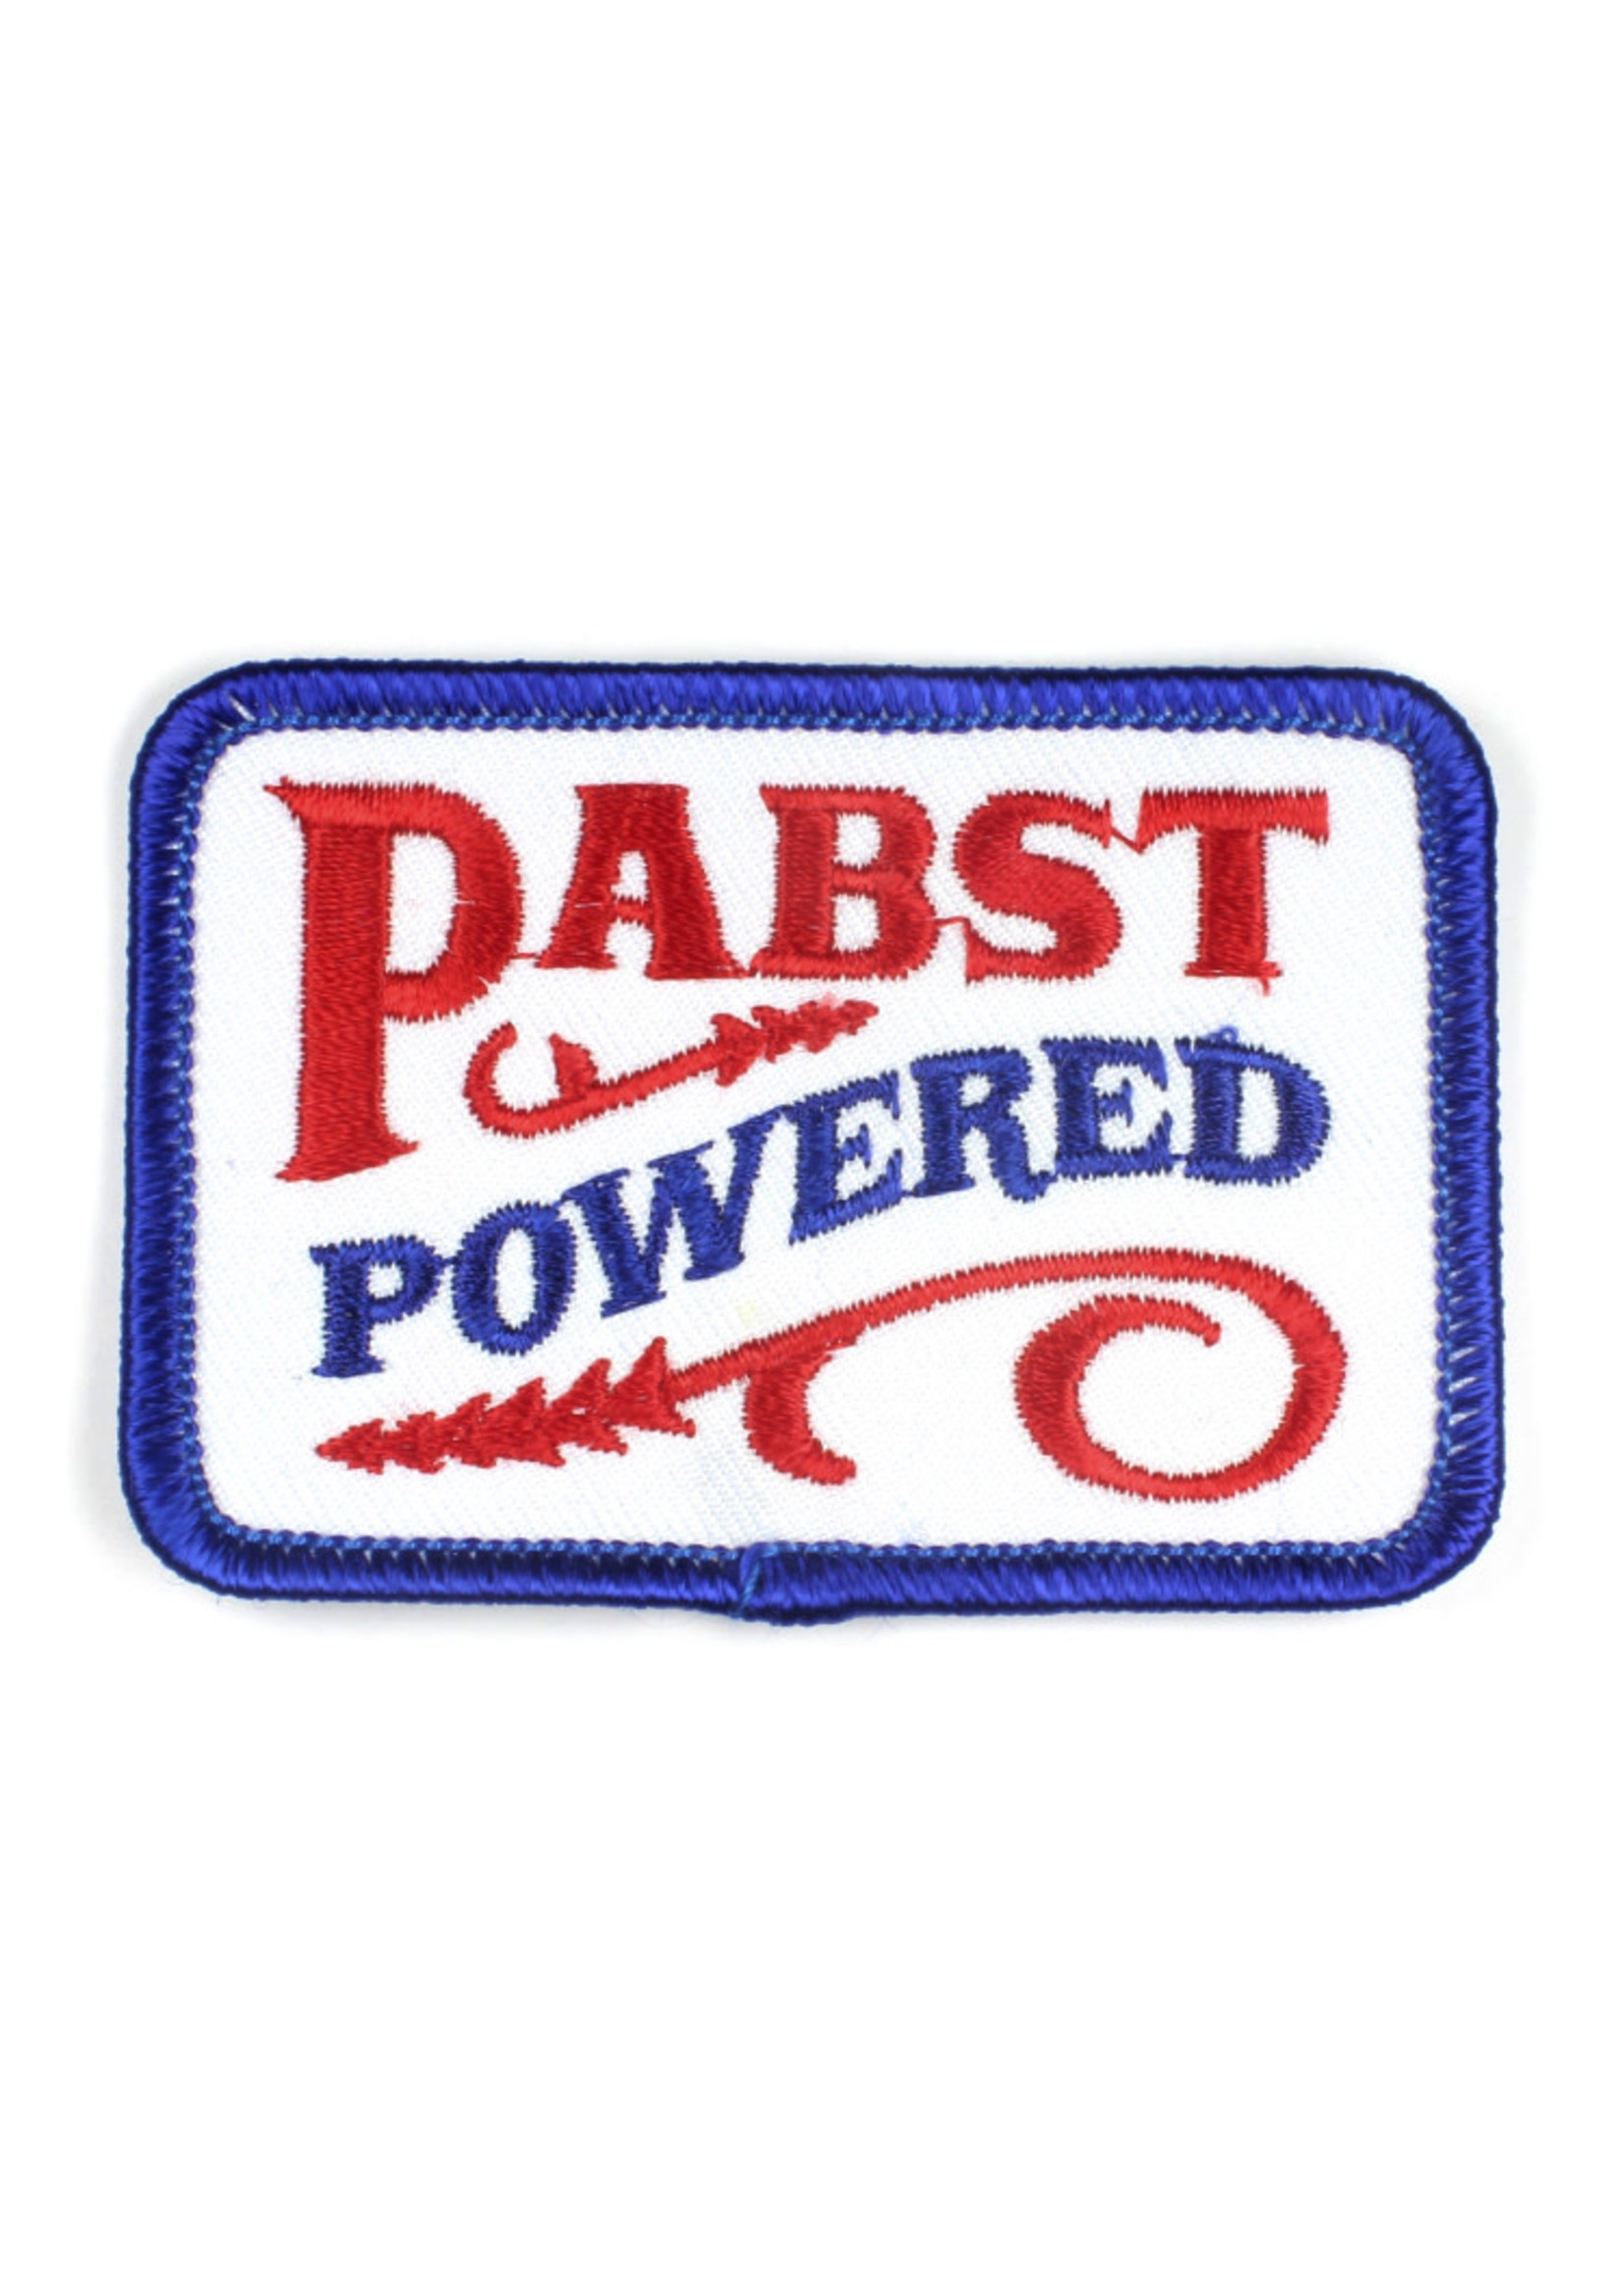 Pabst Pabst Powered Patch Small